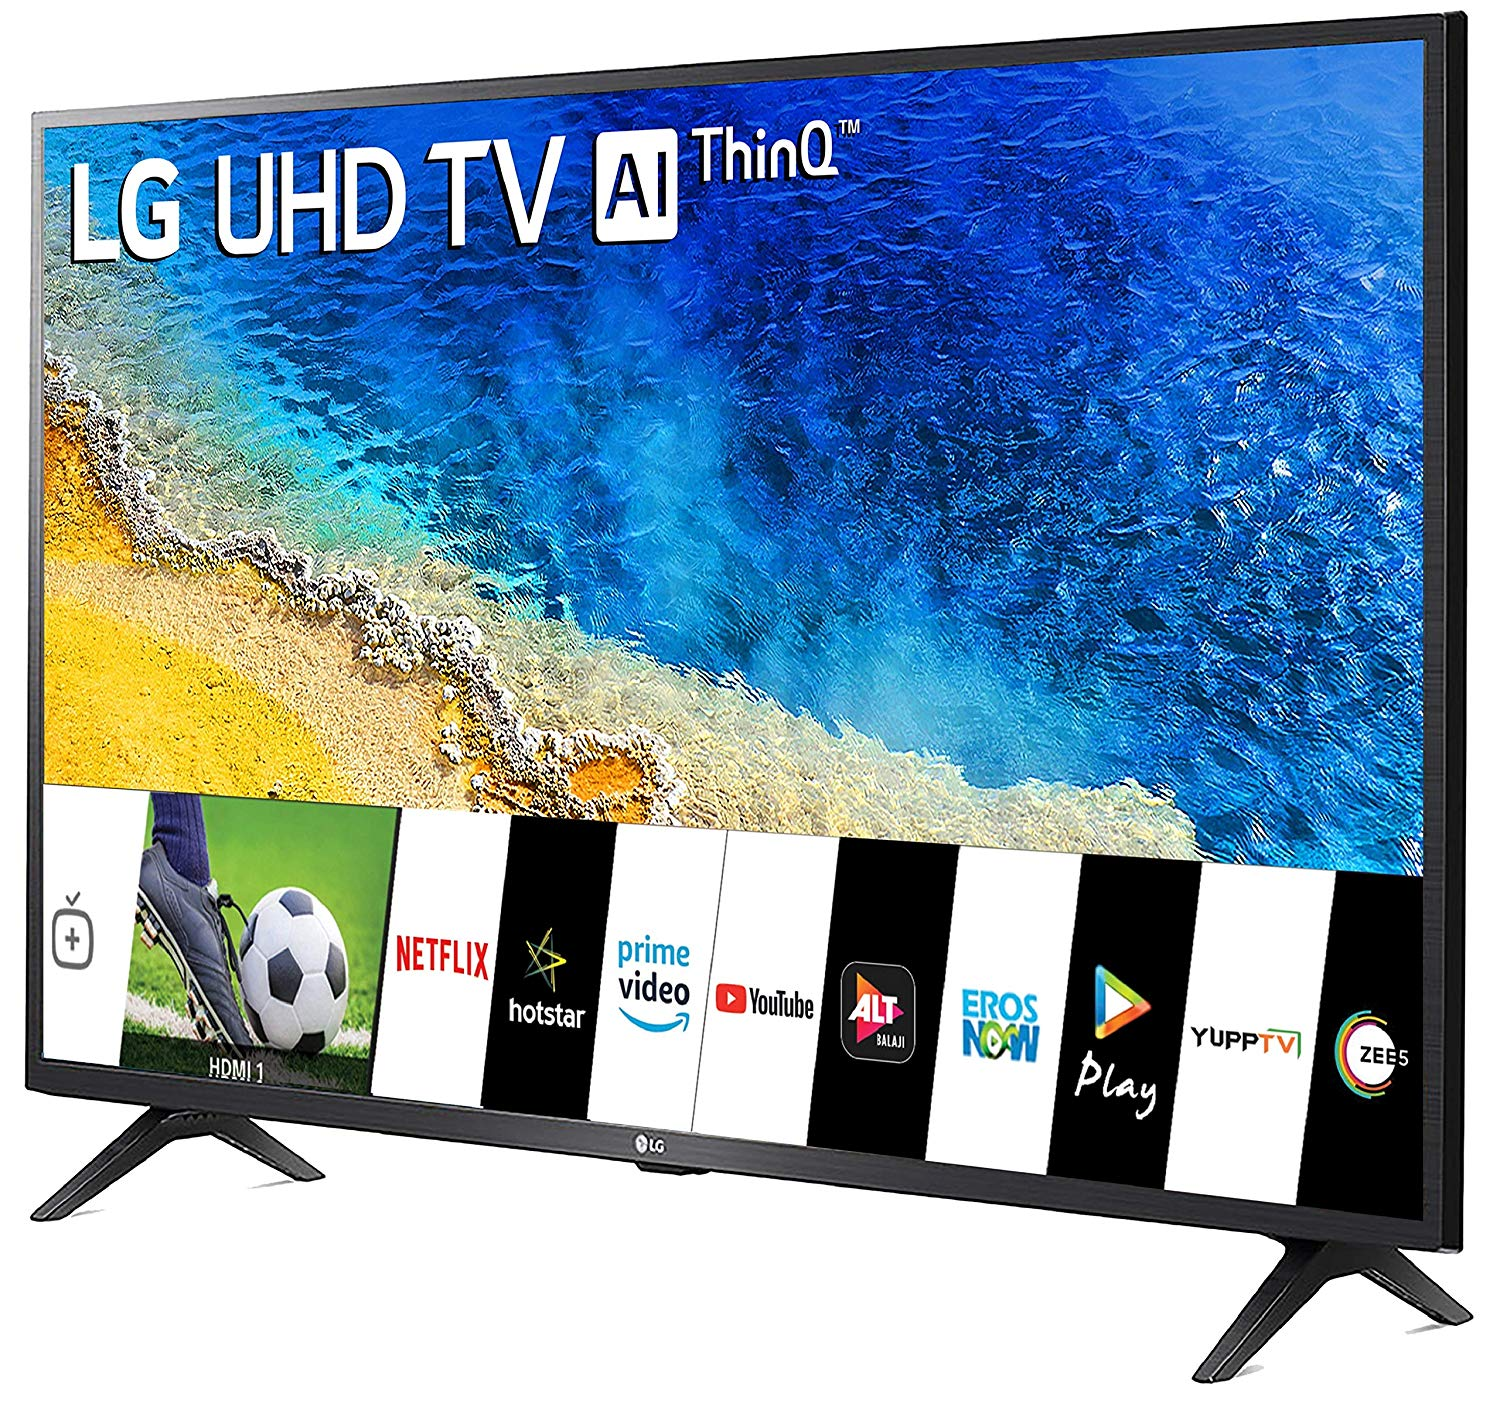 Best 43 Inch Smart TV In India 2019 – Review & Buying Guide